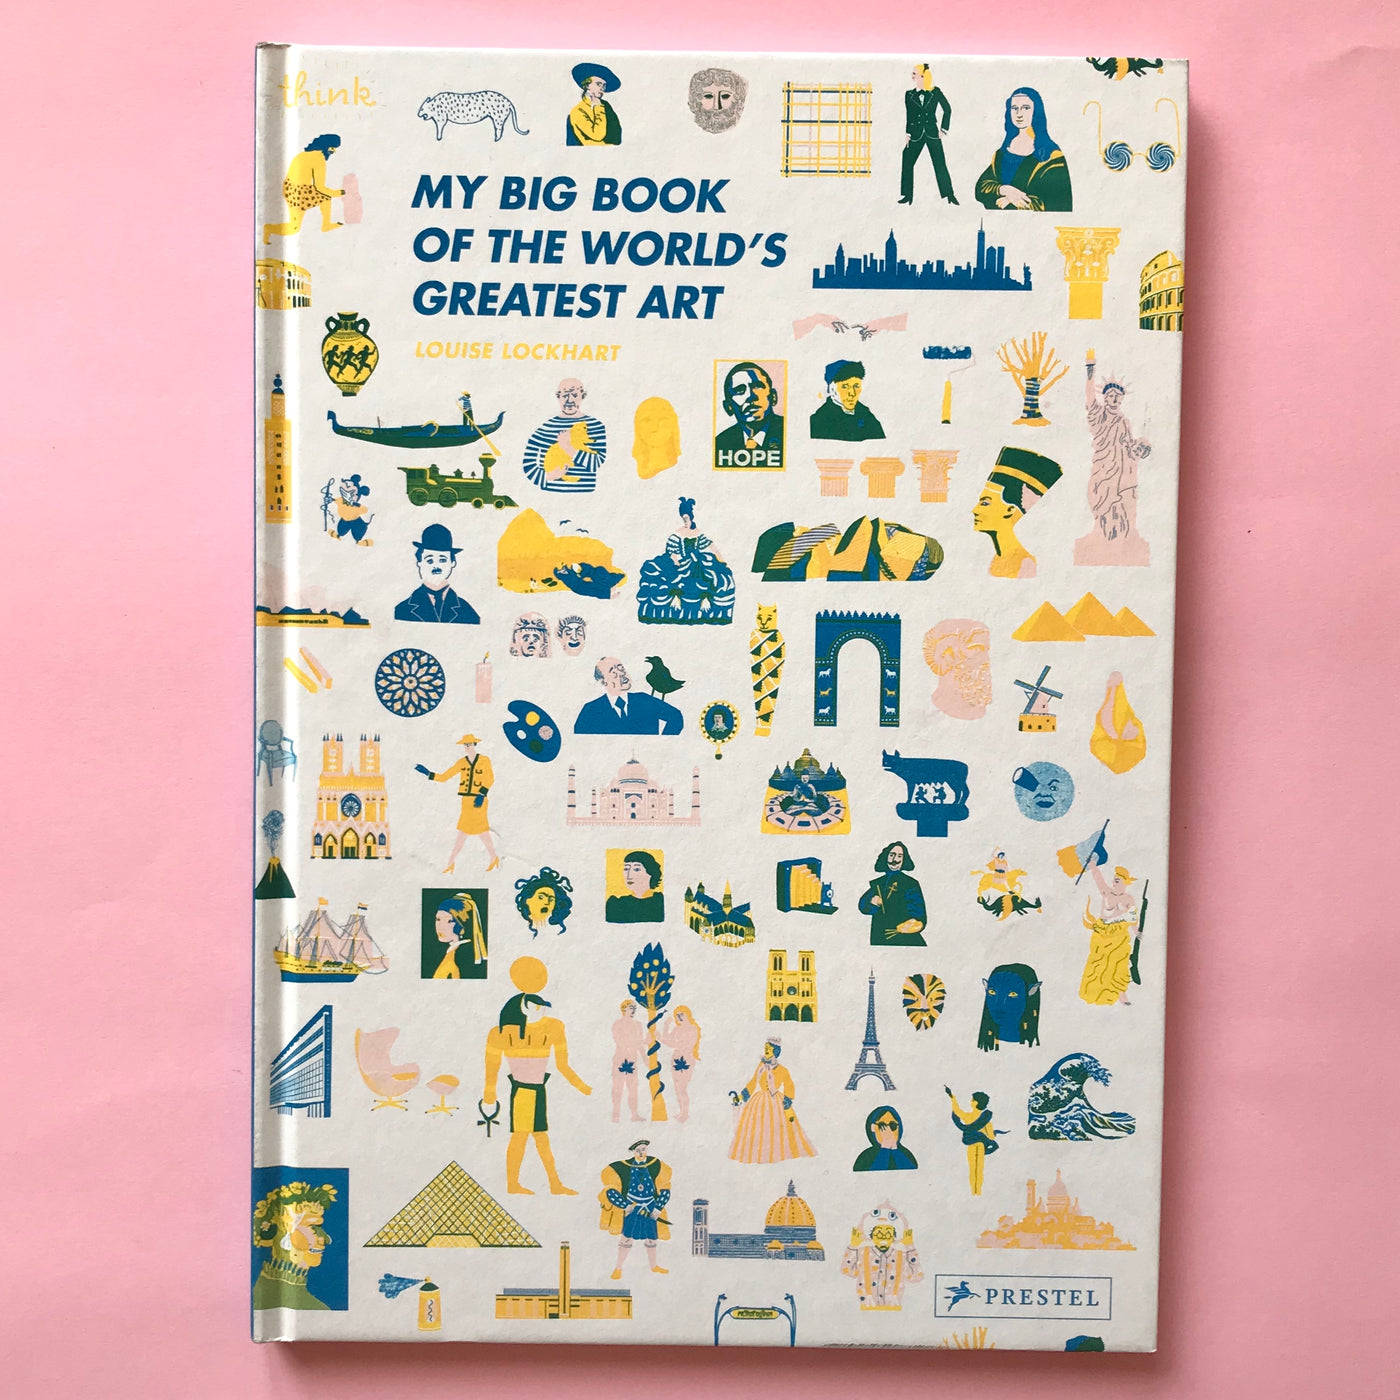 My Big Book of the World's Greatest Art | Louise Lockhart